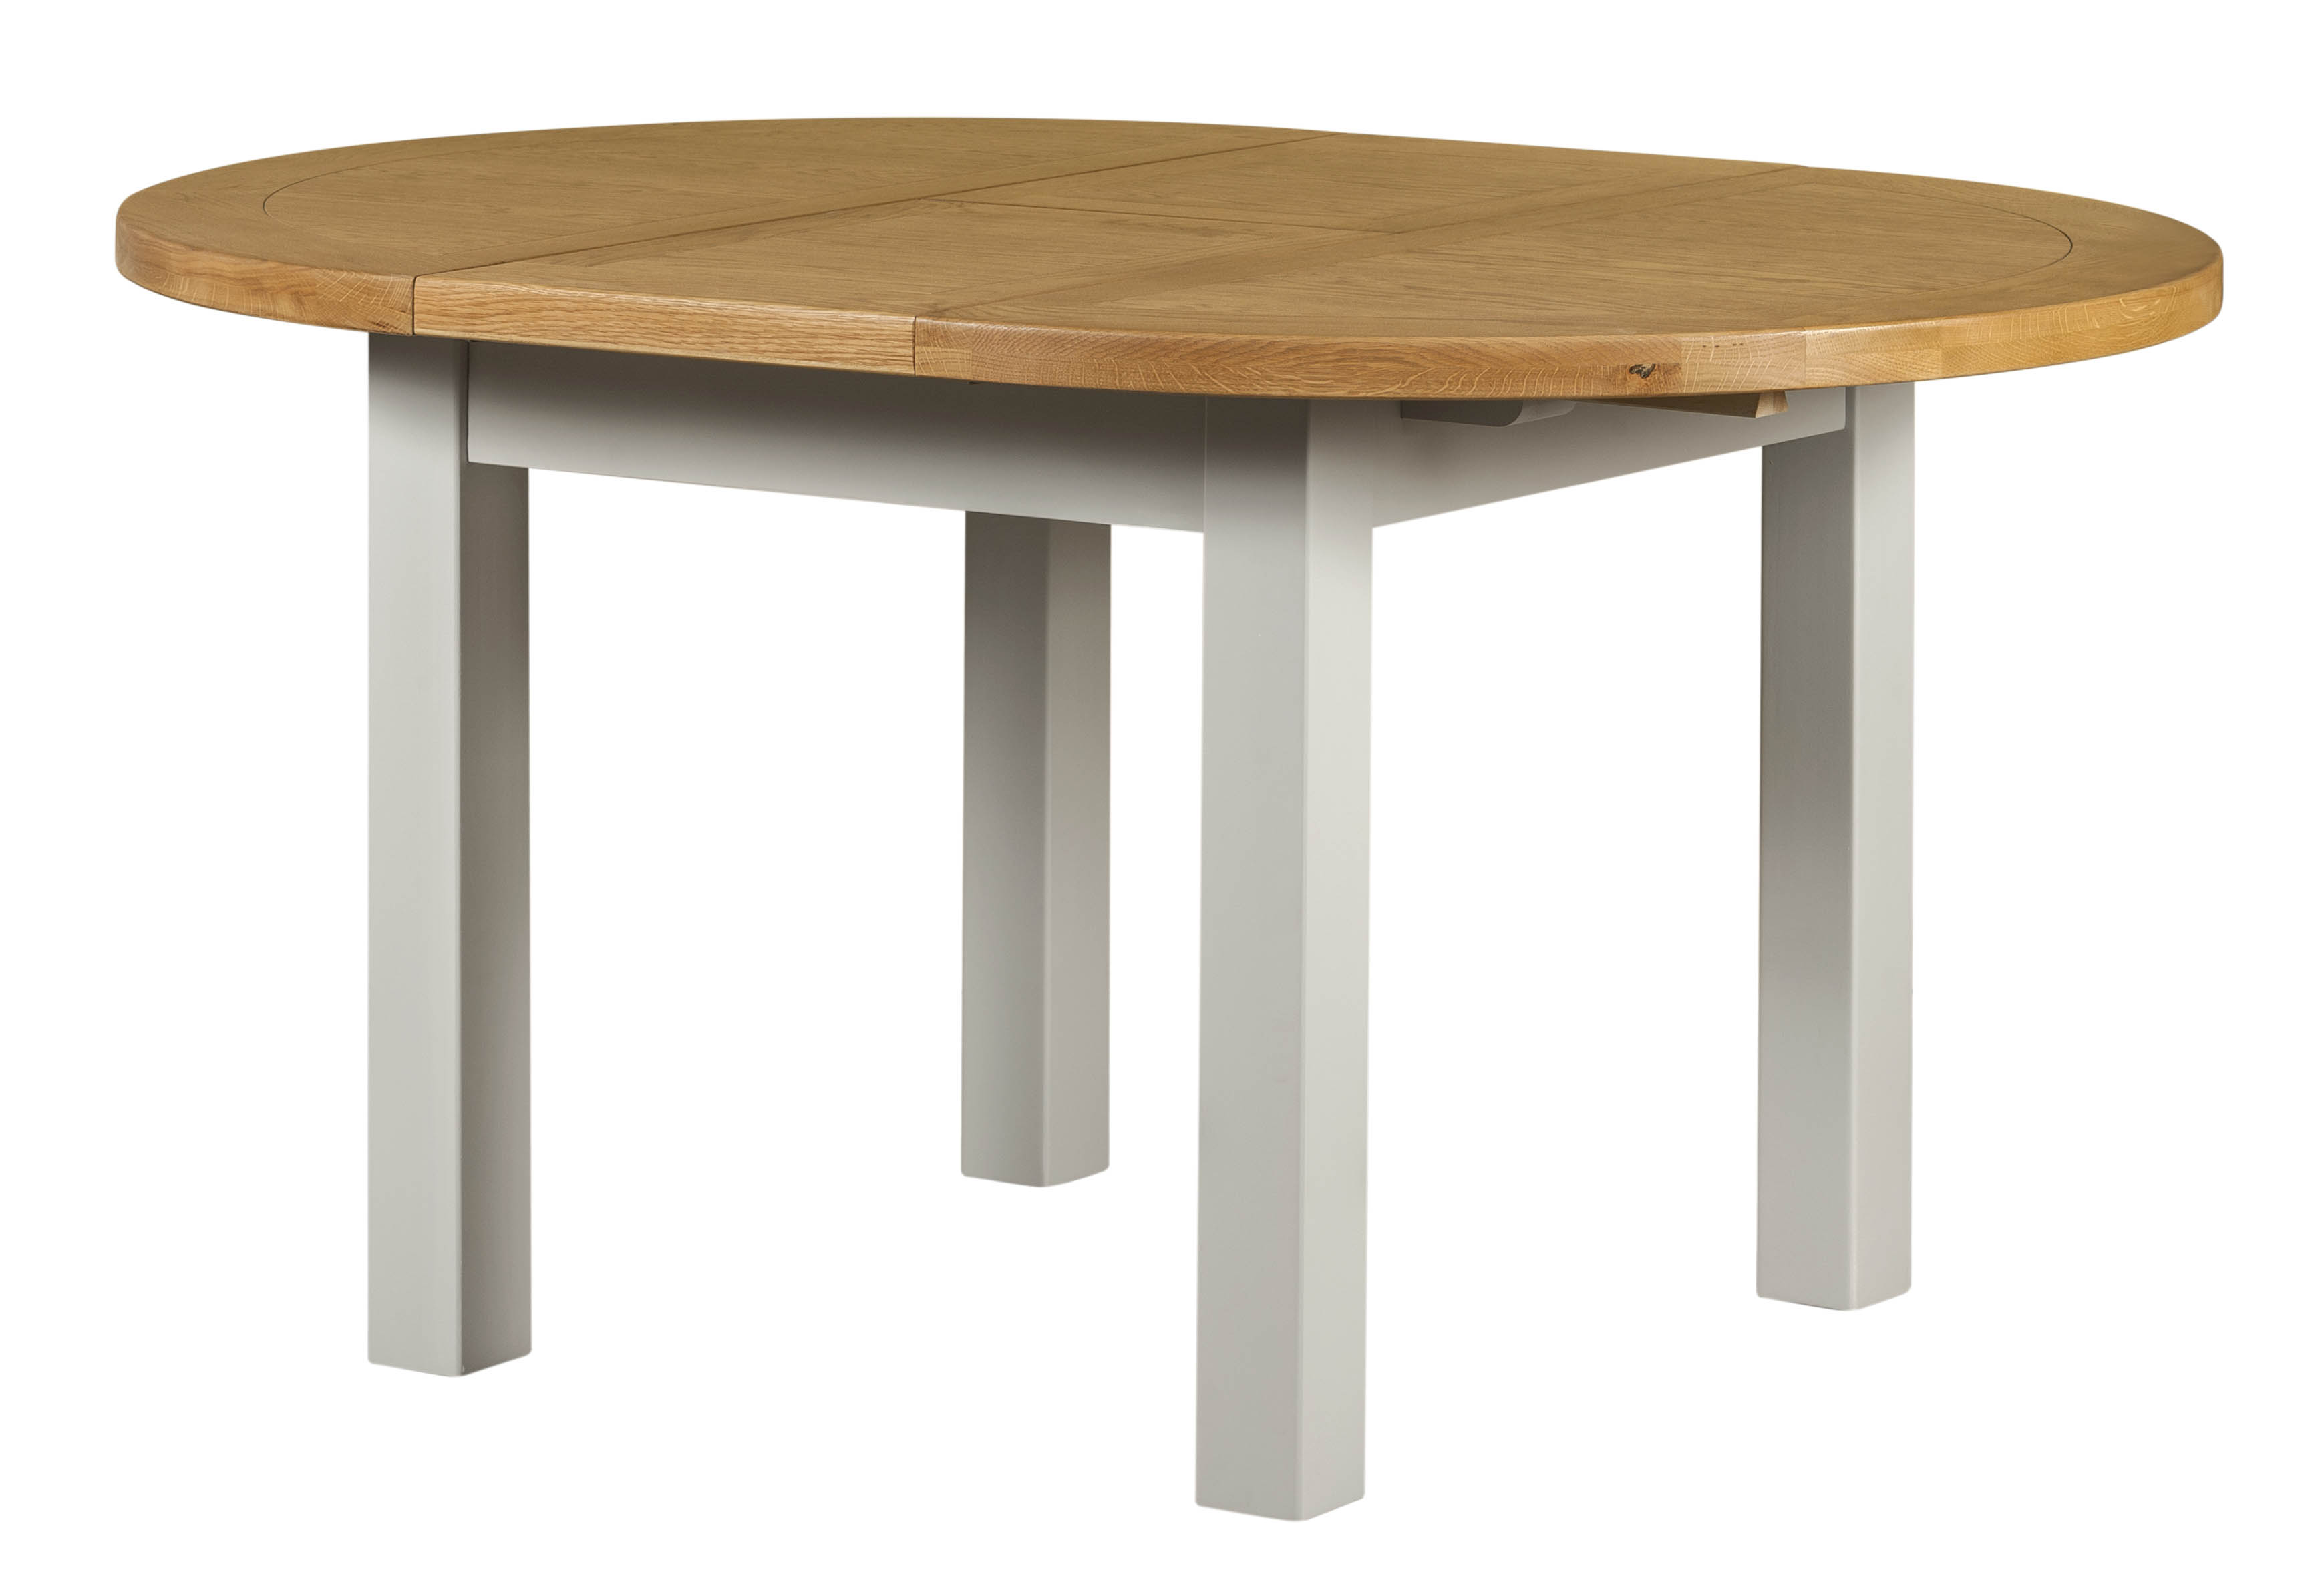 £385.00 - Round dining table grey/lighter top